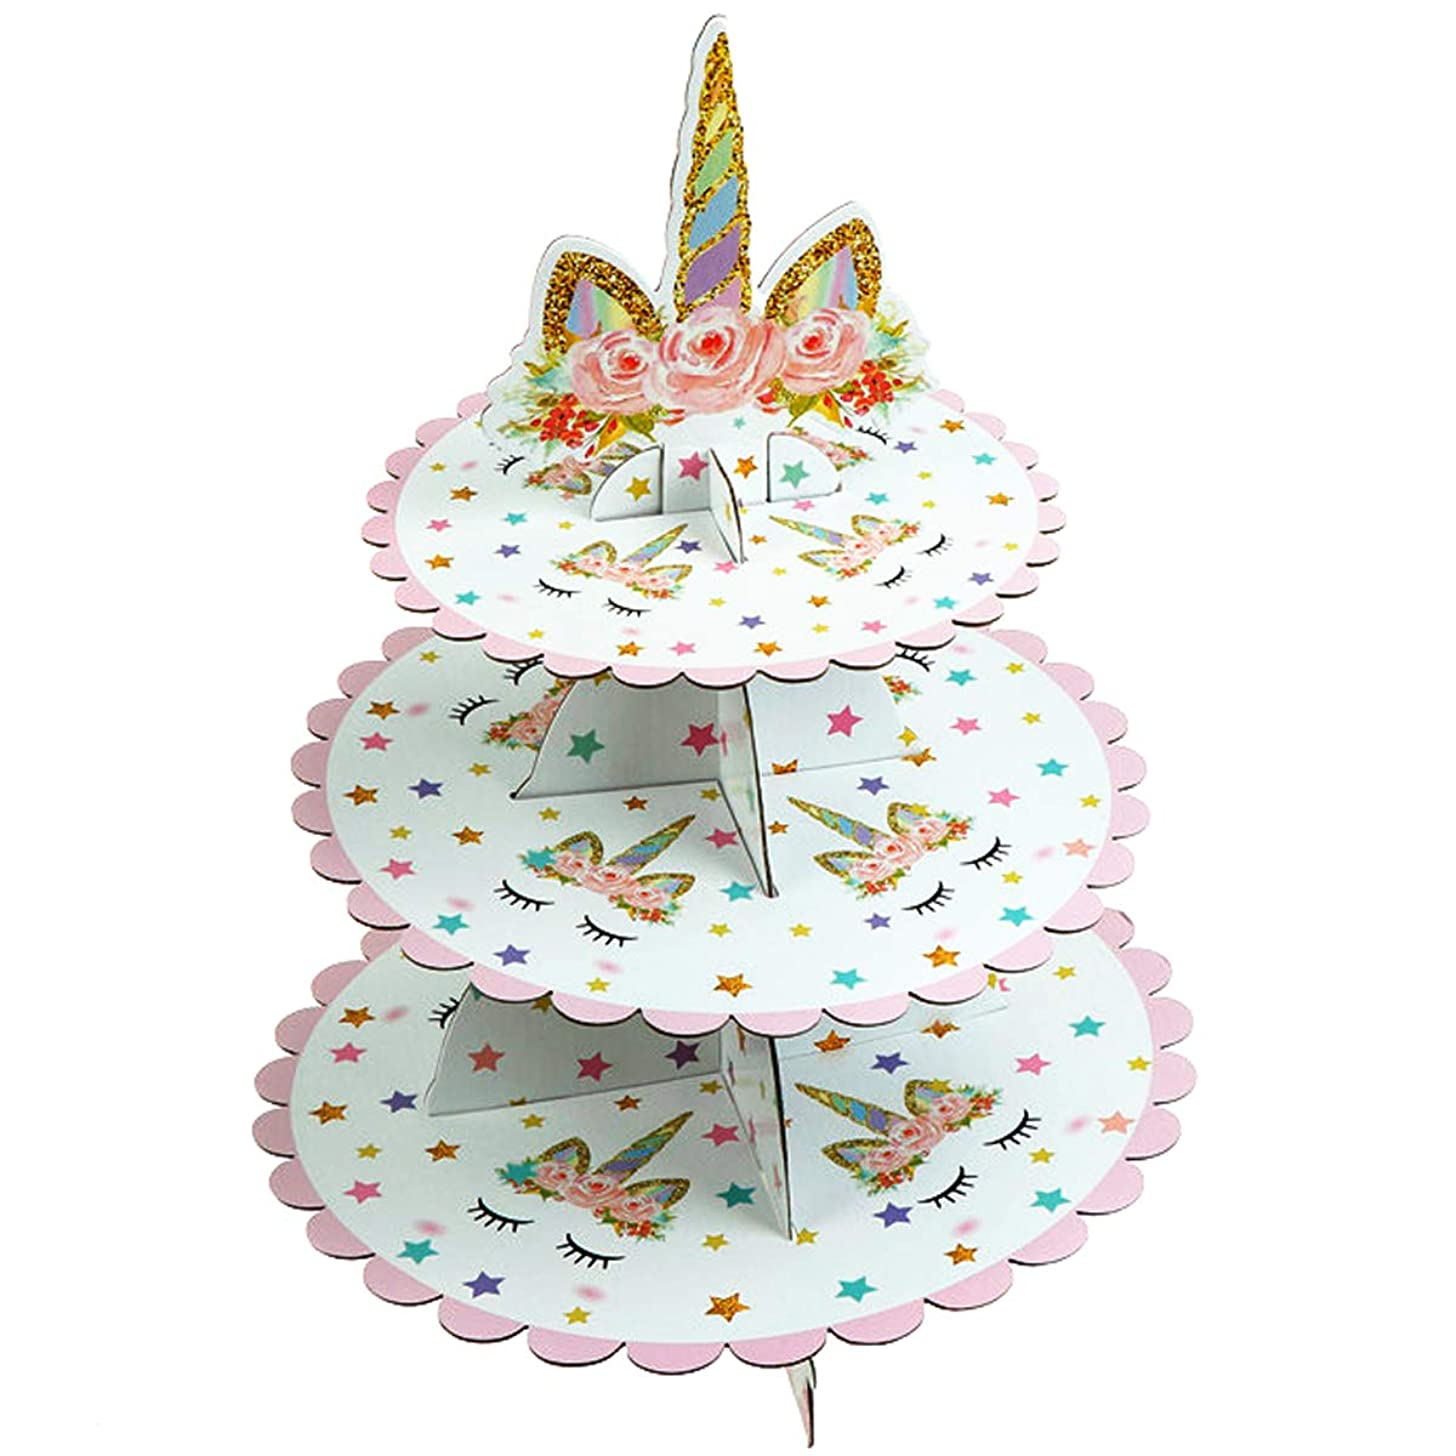 JETTINGBUY 3 Tier Unicorn Cardboard Cupcake Stand Dessert Cupcake Holder for Baby Shower, Gender Reveal Party, Kids Birthday Party or Unicorn Themed Party